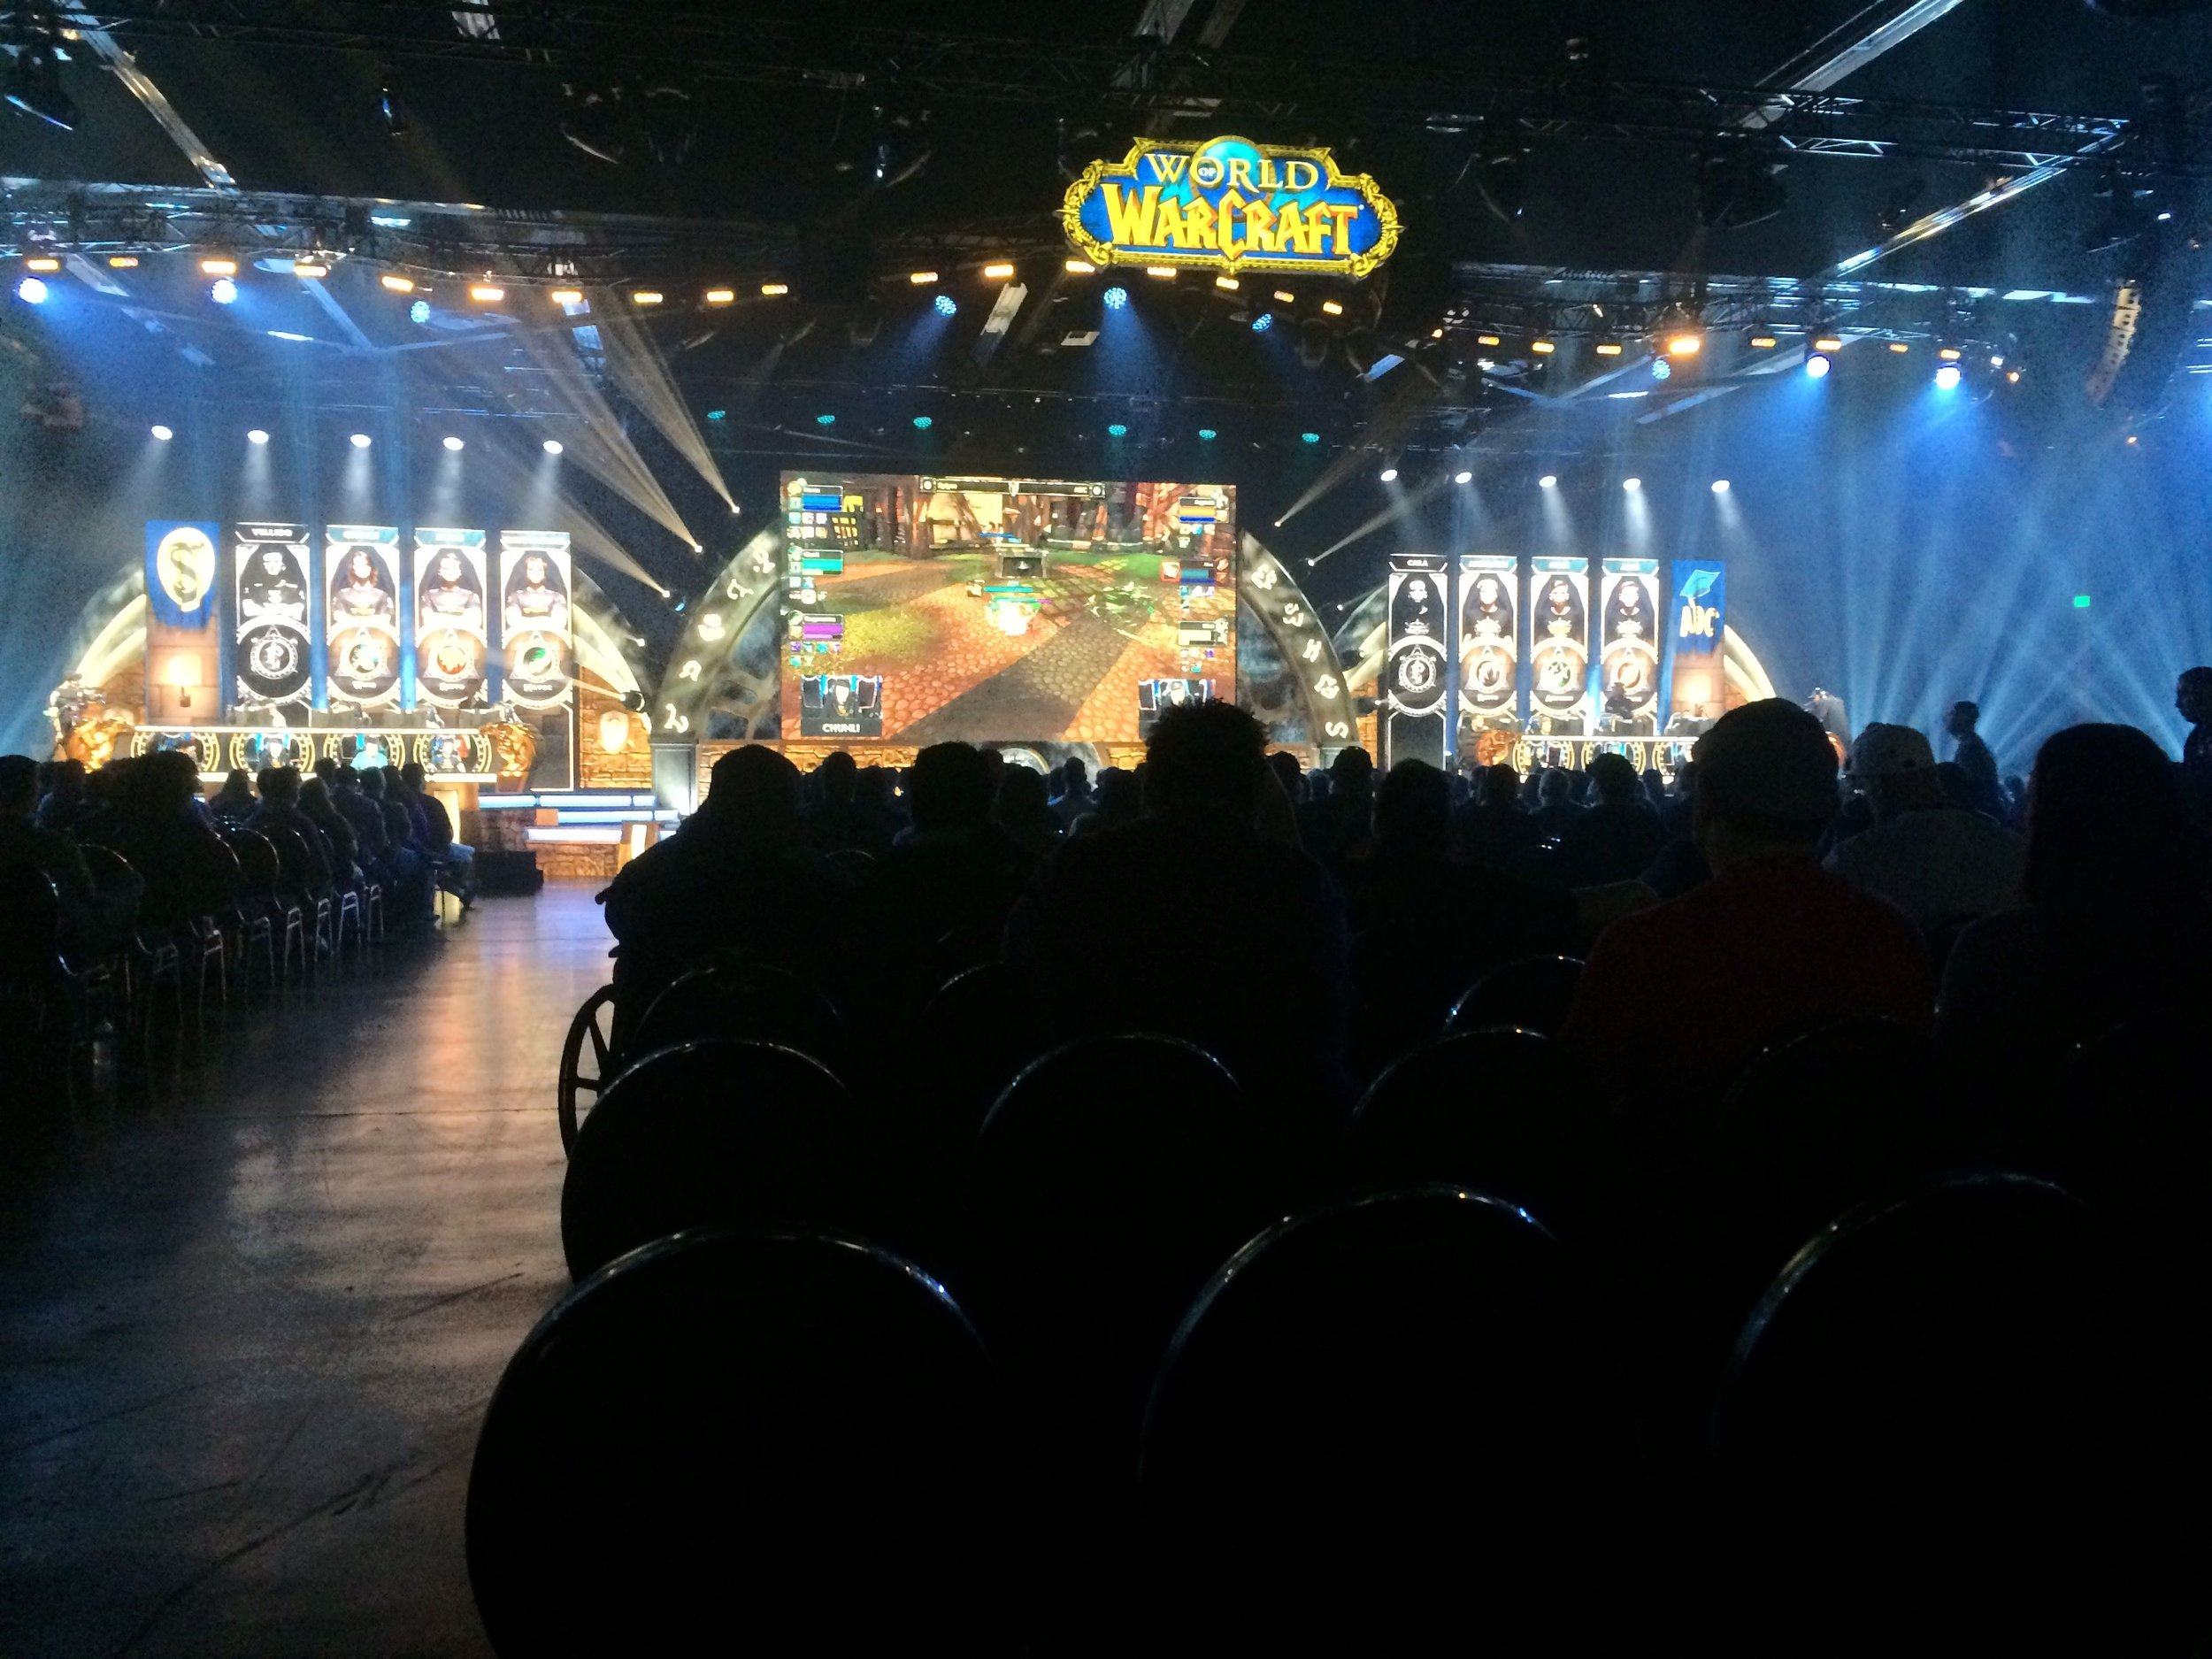 World of Warcraft Finals at BlizzCon 2017.